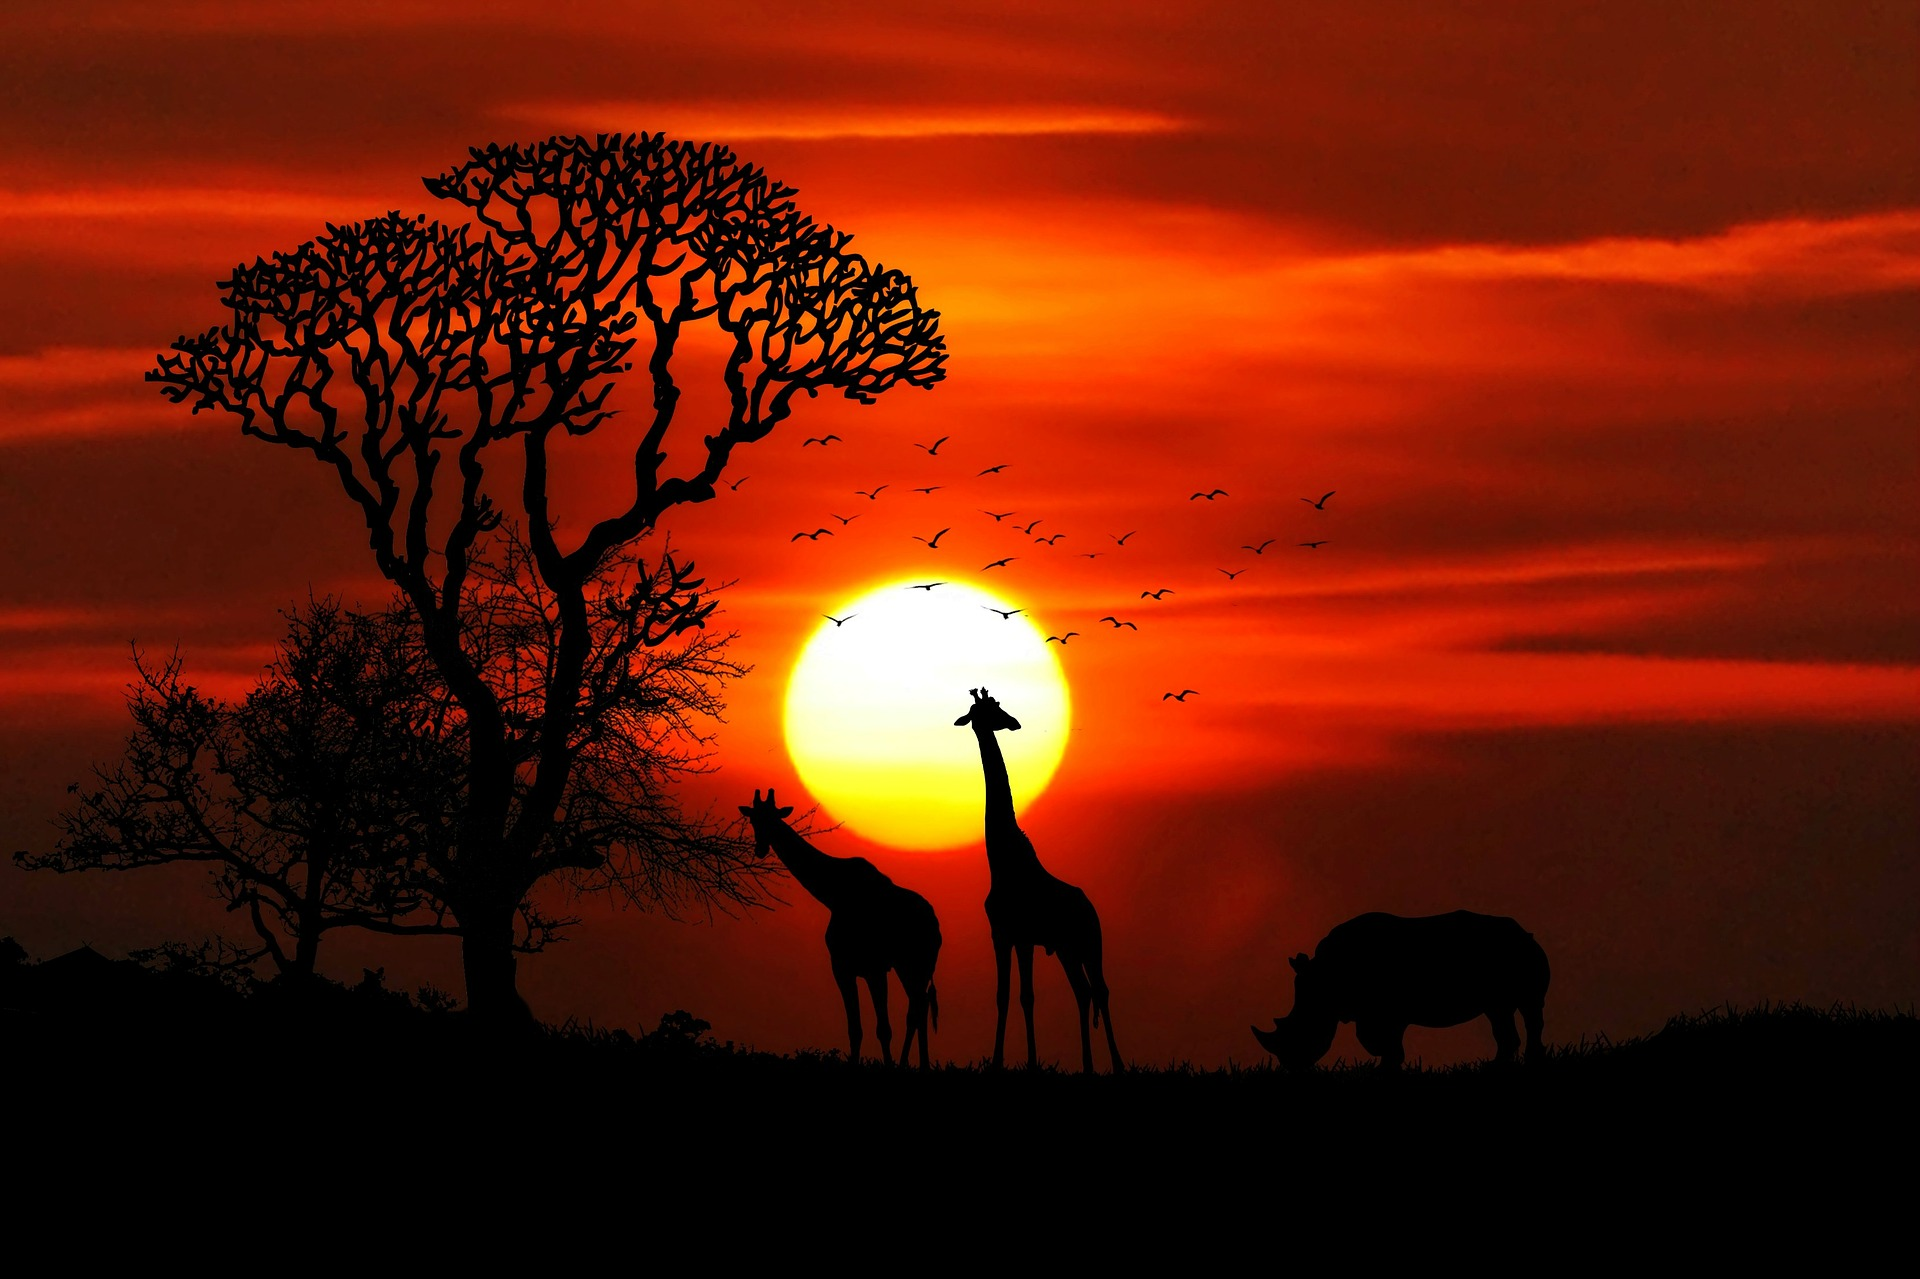 Category: Africa